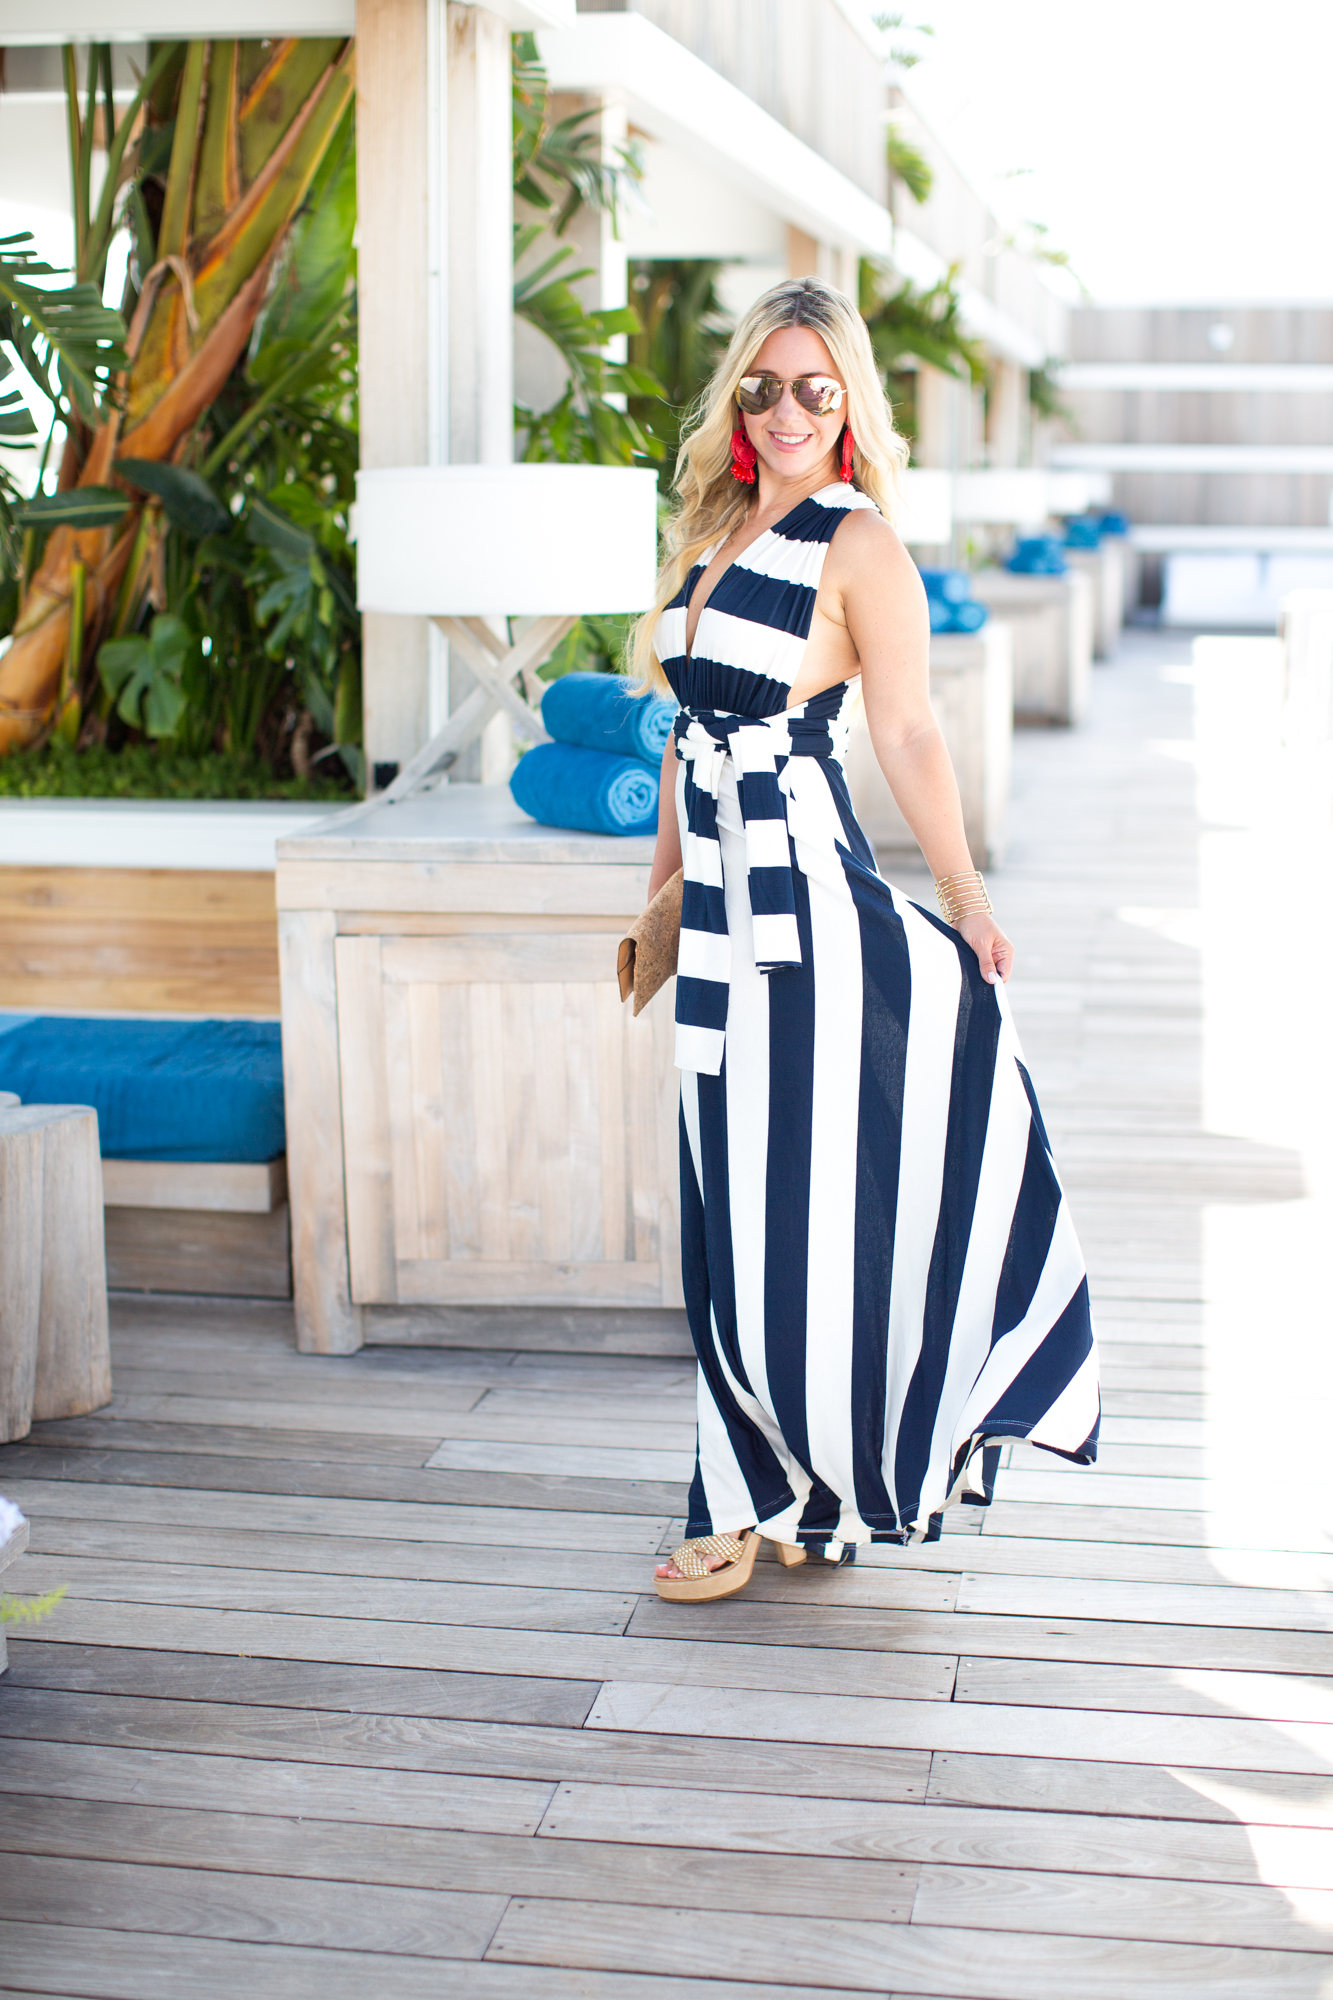 Nautical Striped Dress | The Darling Petite Diva | Nicole Kirk | Dallas Blogger